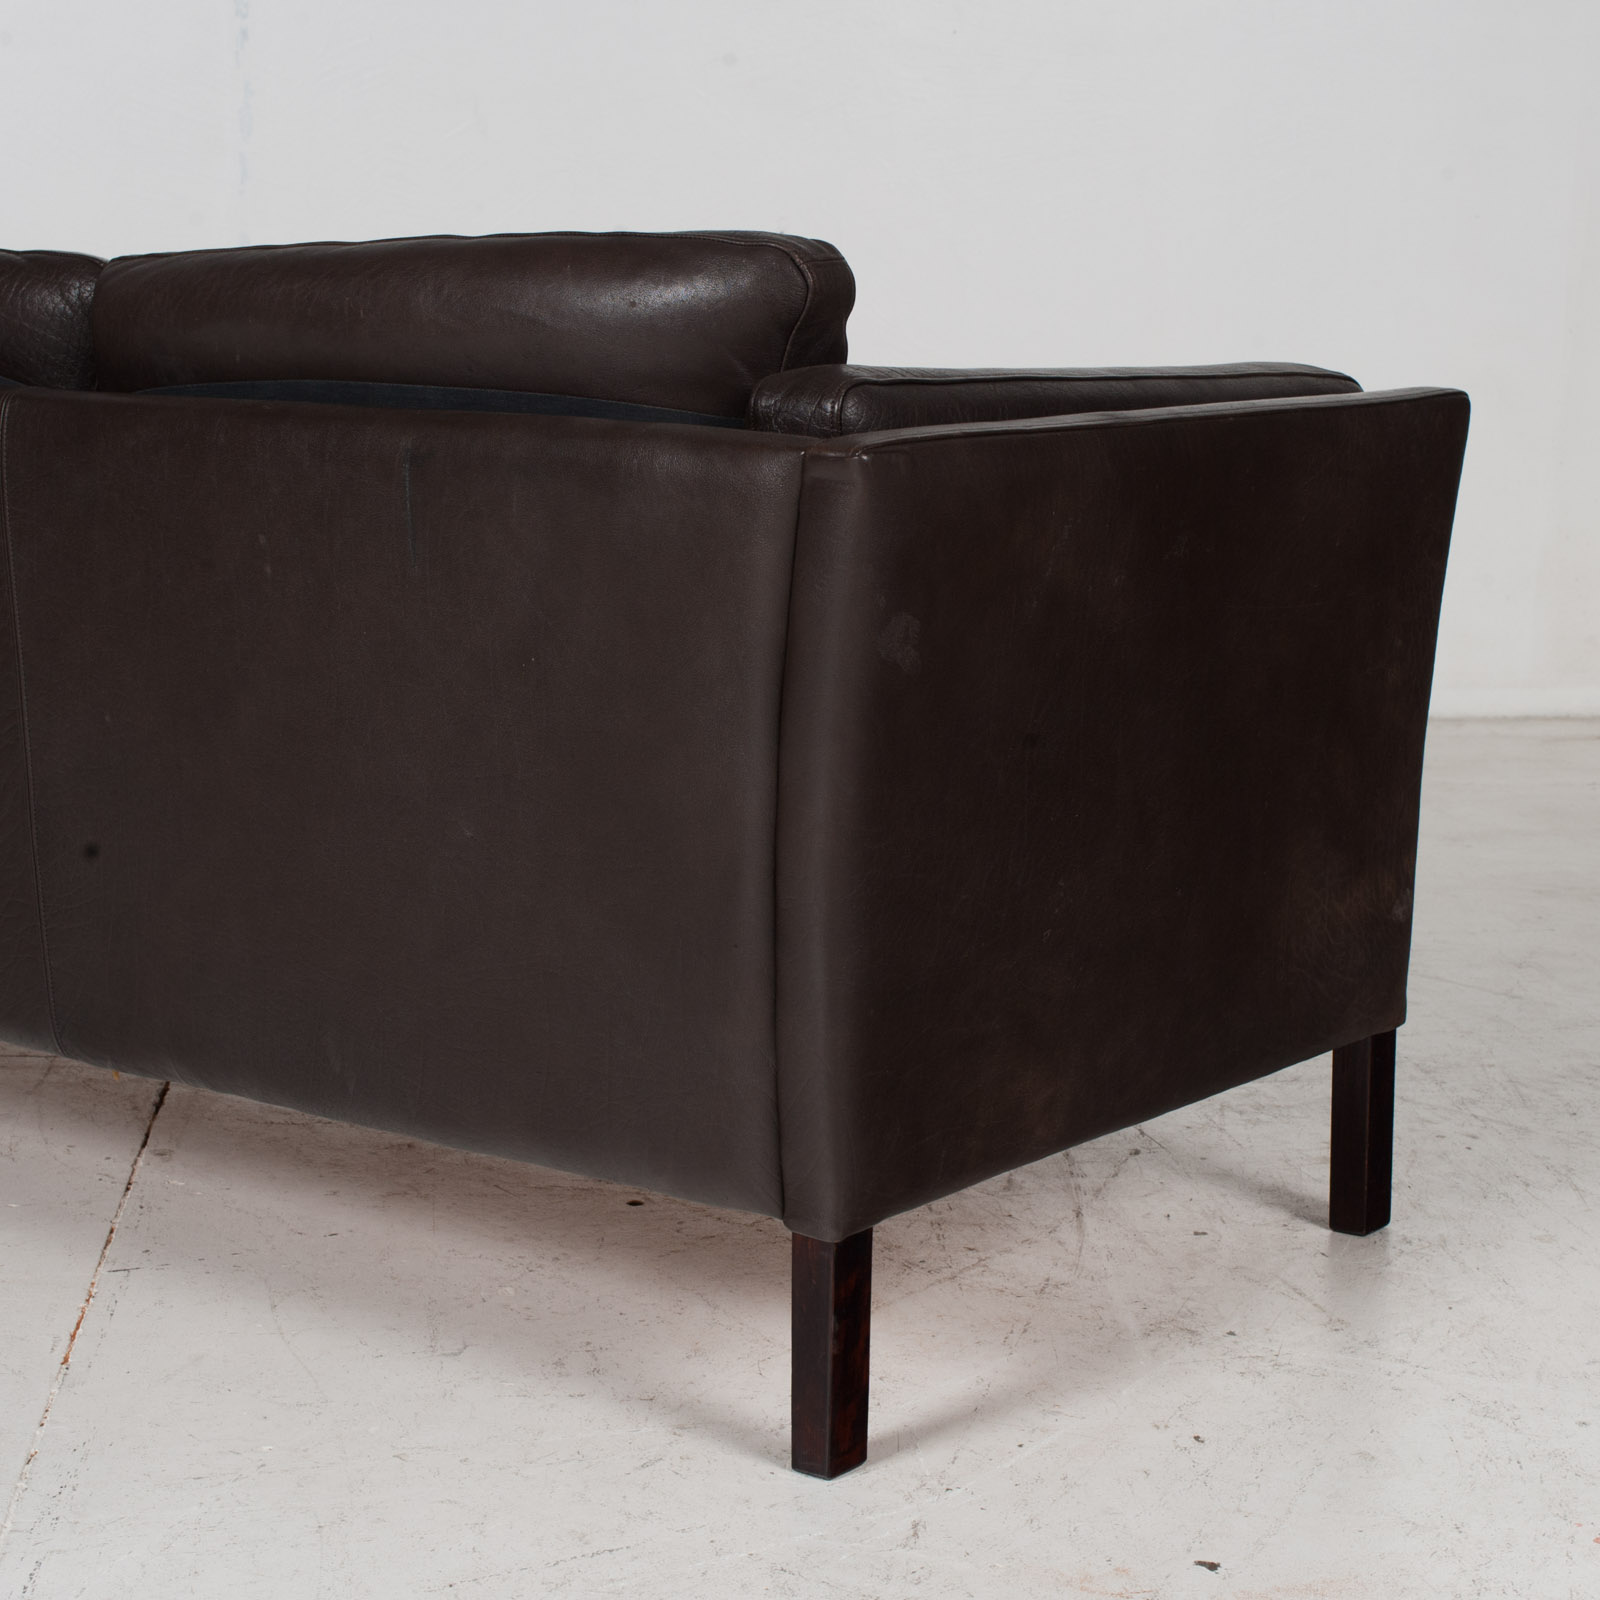 3 Seat Sofa In Dark Brown Leather, 1960s, Denmark 9